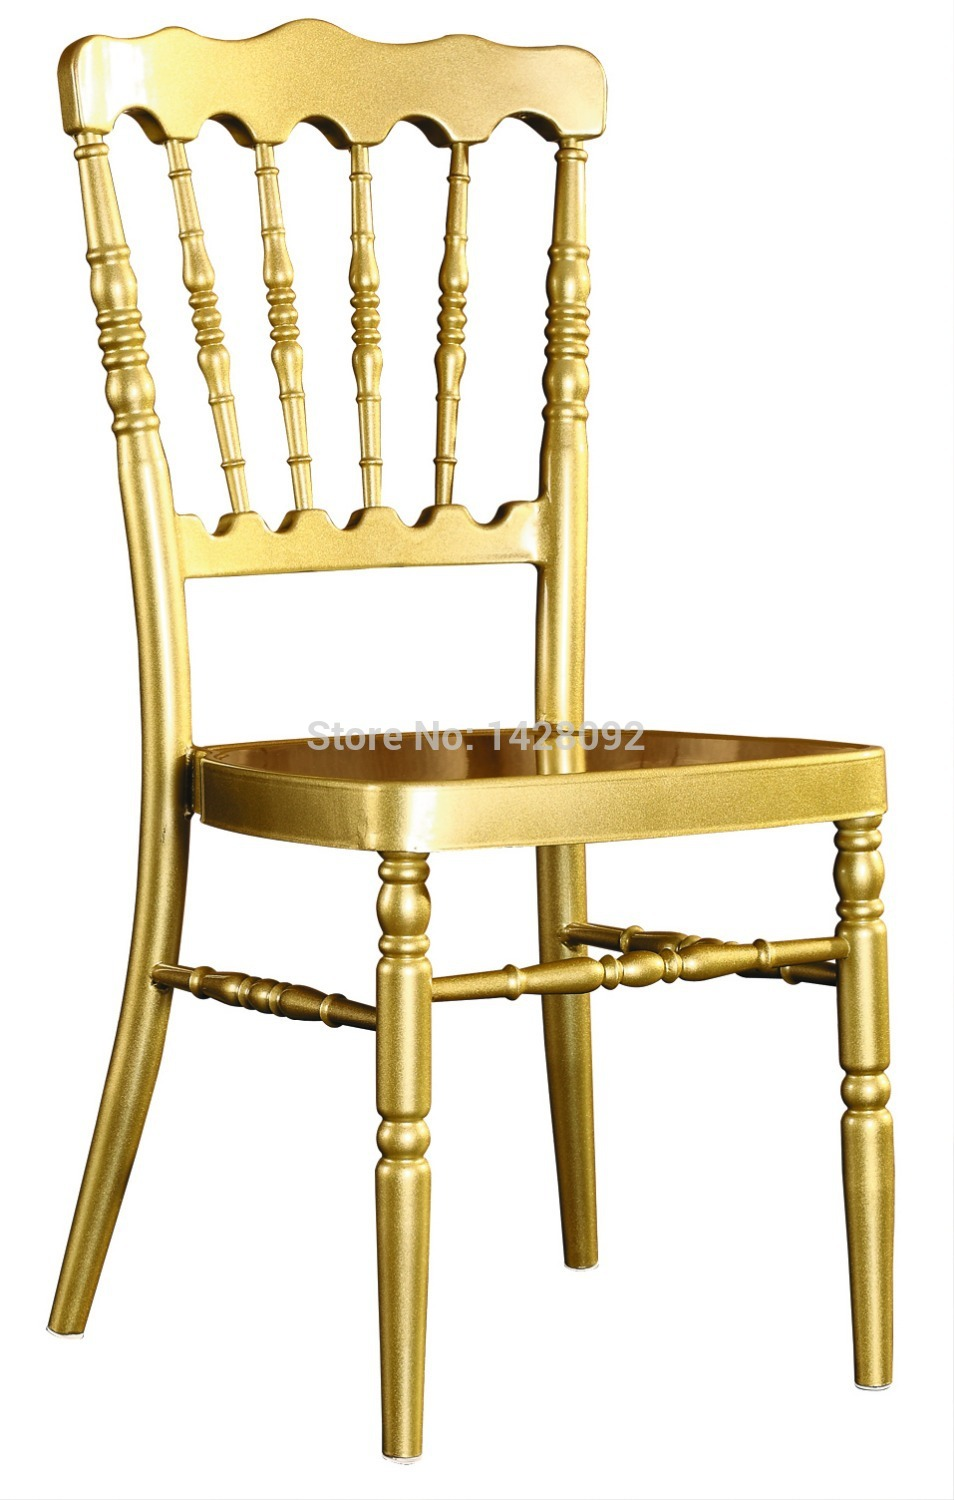 wholesale quality strong gold aluminum napoleon chair wholesale quality strong gold aluminum napoleon chair